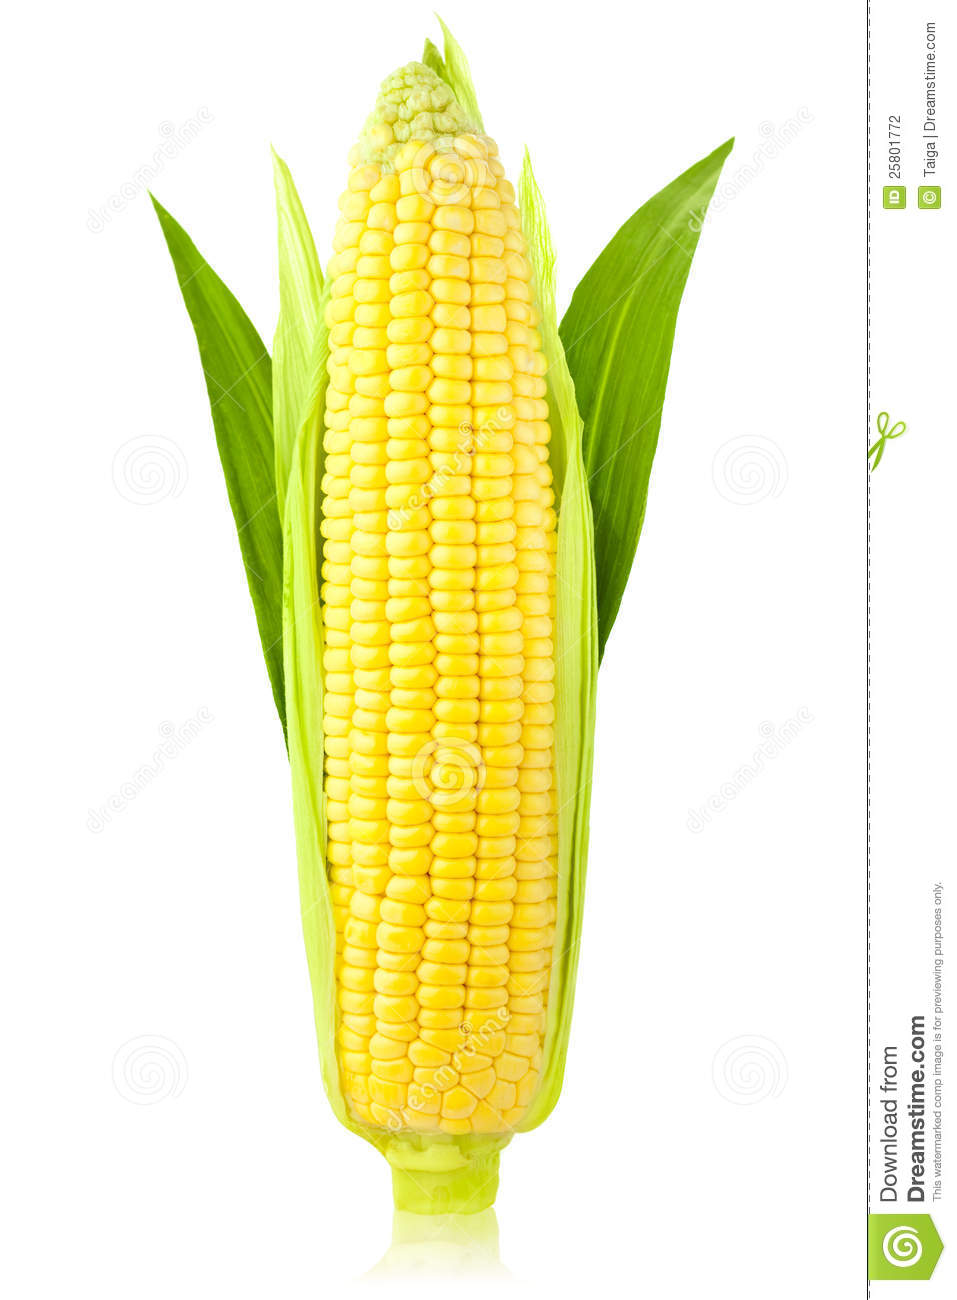 Ear Of Corn / Vertical / Isolated Stock Photography - Image: 25801772